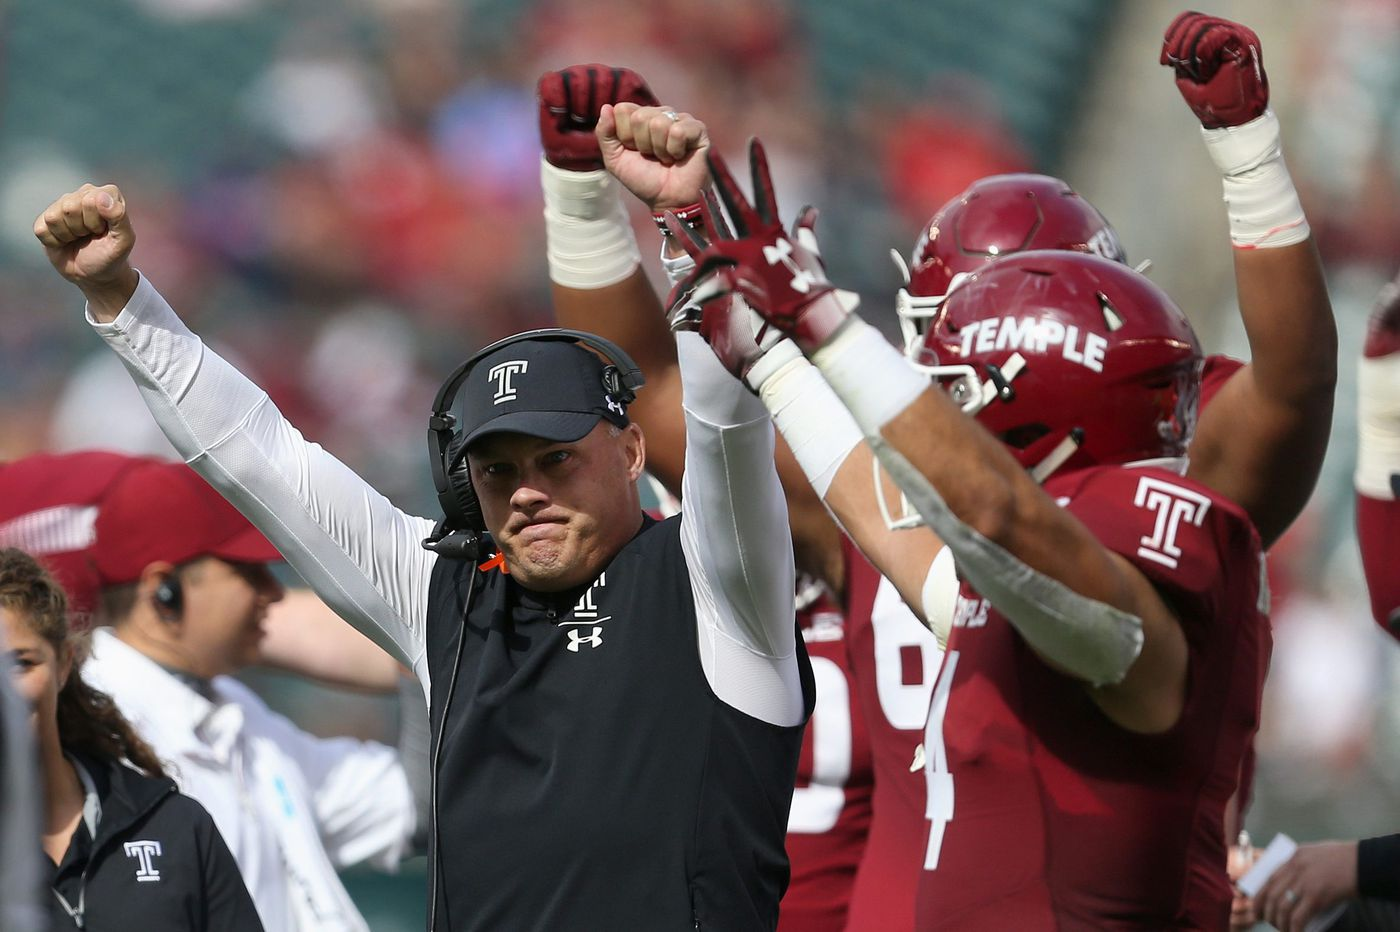 The Temple Owls, not the Eagles, are the one hot football team at the Linc   Mike Jensen